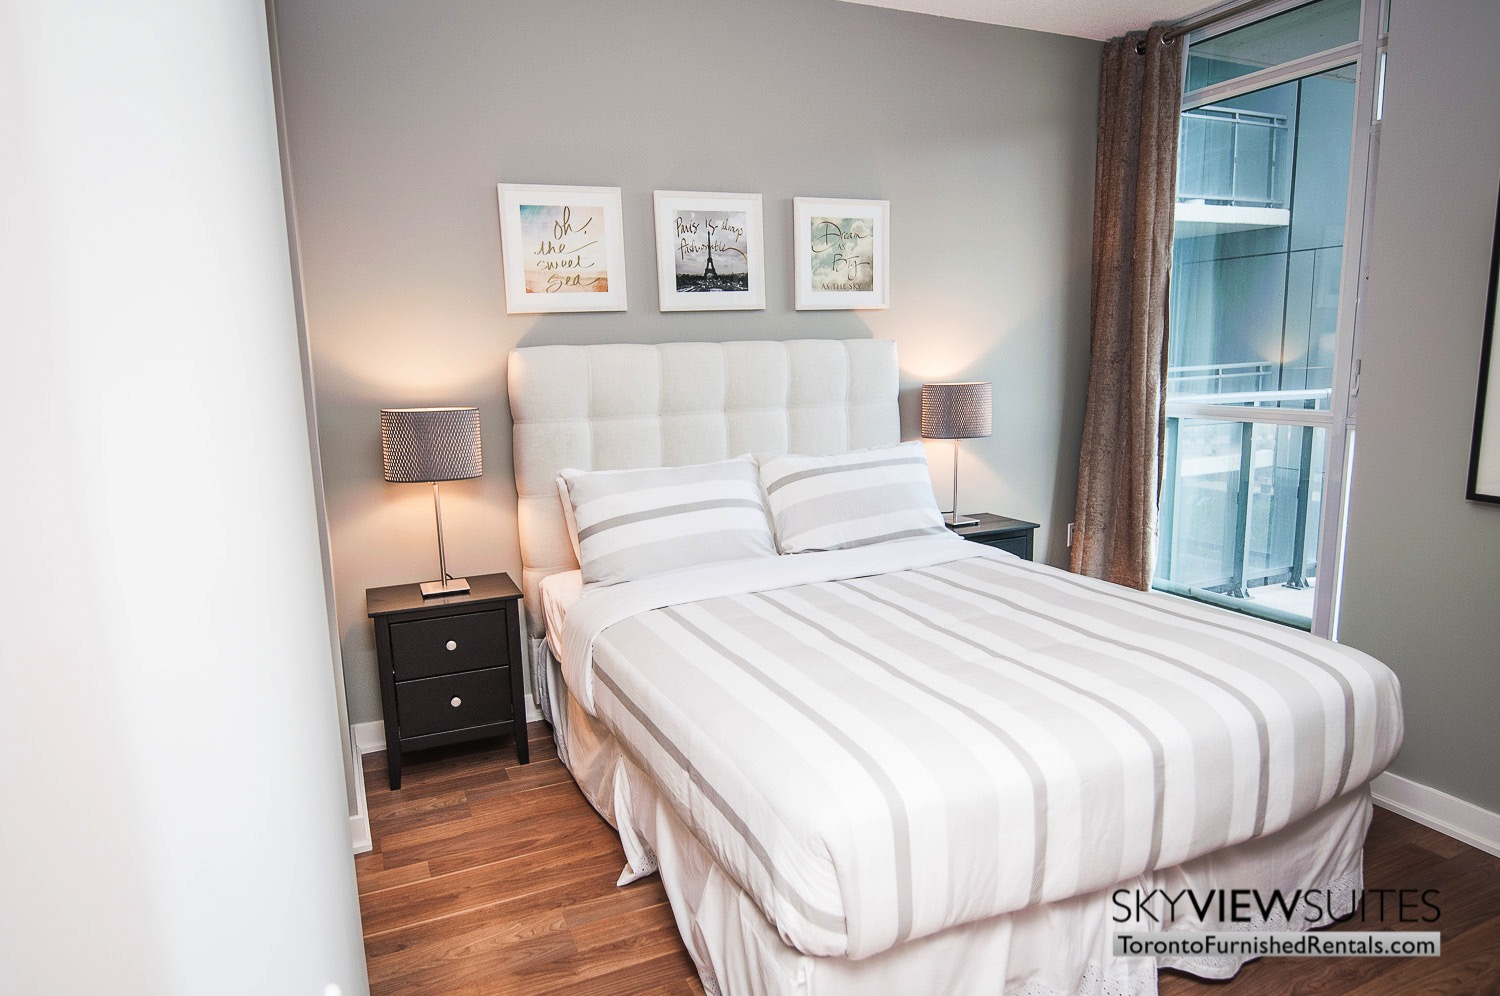 King west corporate rentals toronto white bedsheets